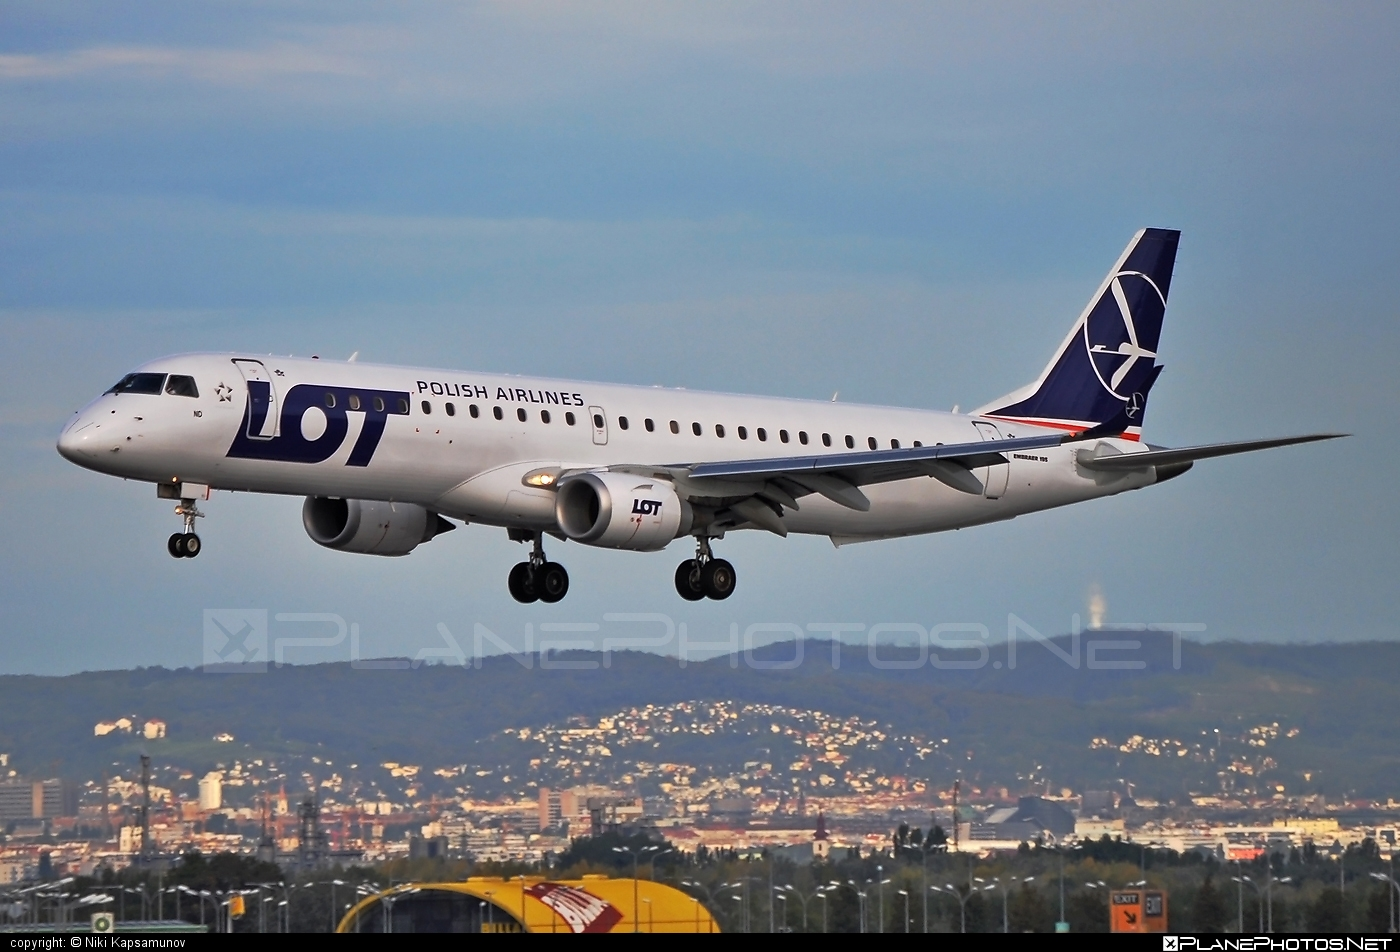 Embraer E195LR (ERJ-190-200LR) - SP-LND operated by LOT Polish Airlines #e190 #e190200 #e190200lr #e195lr #embraer #embraer190200lr #embraer195 #embraer195lr #lot #lotpolishairlines